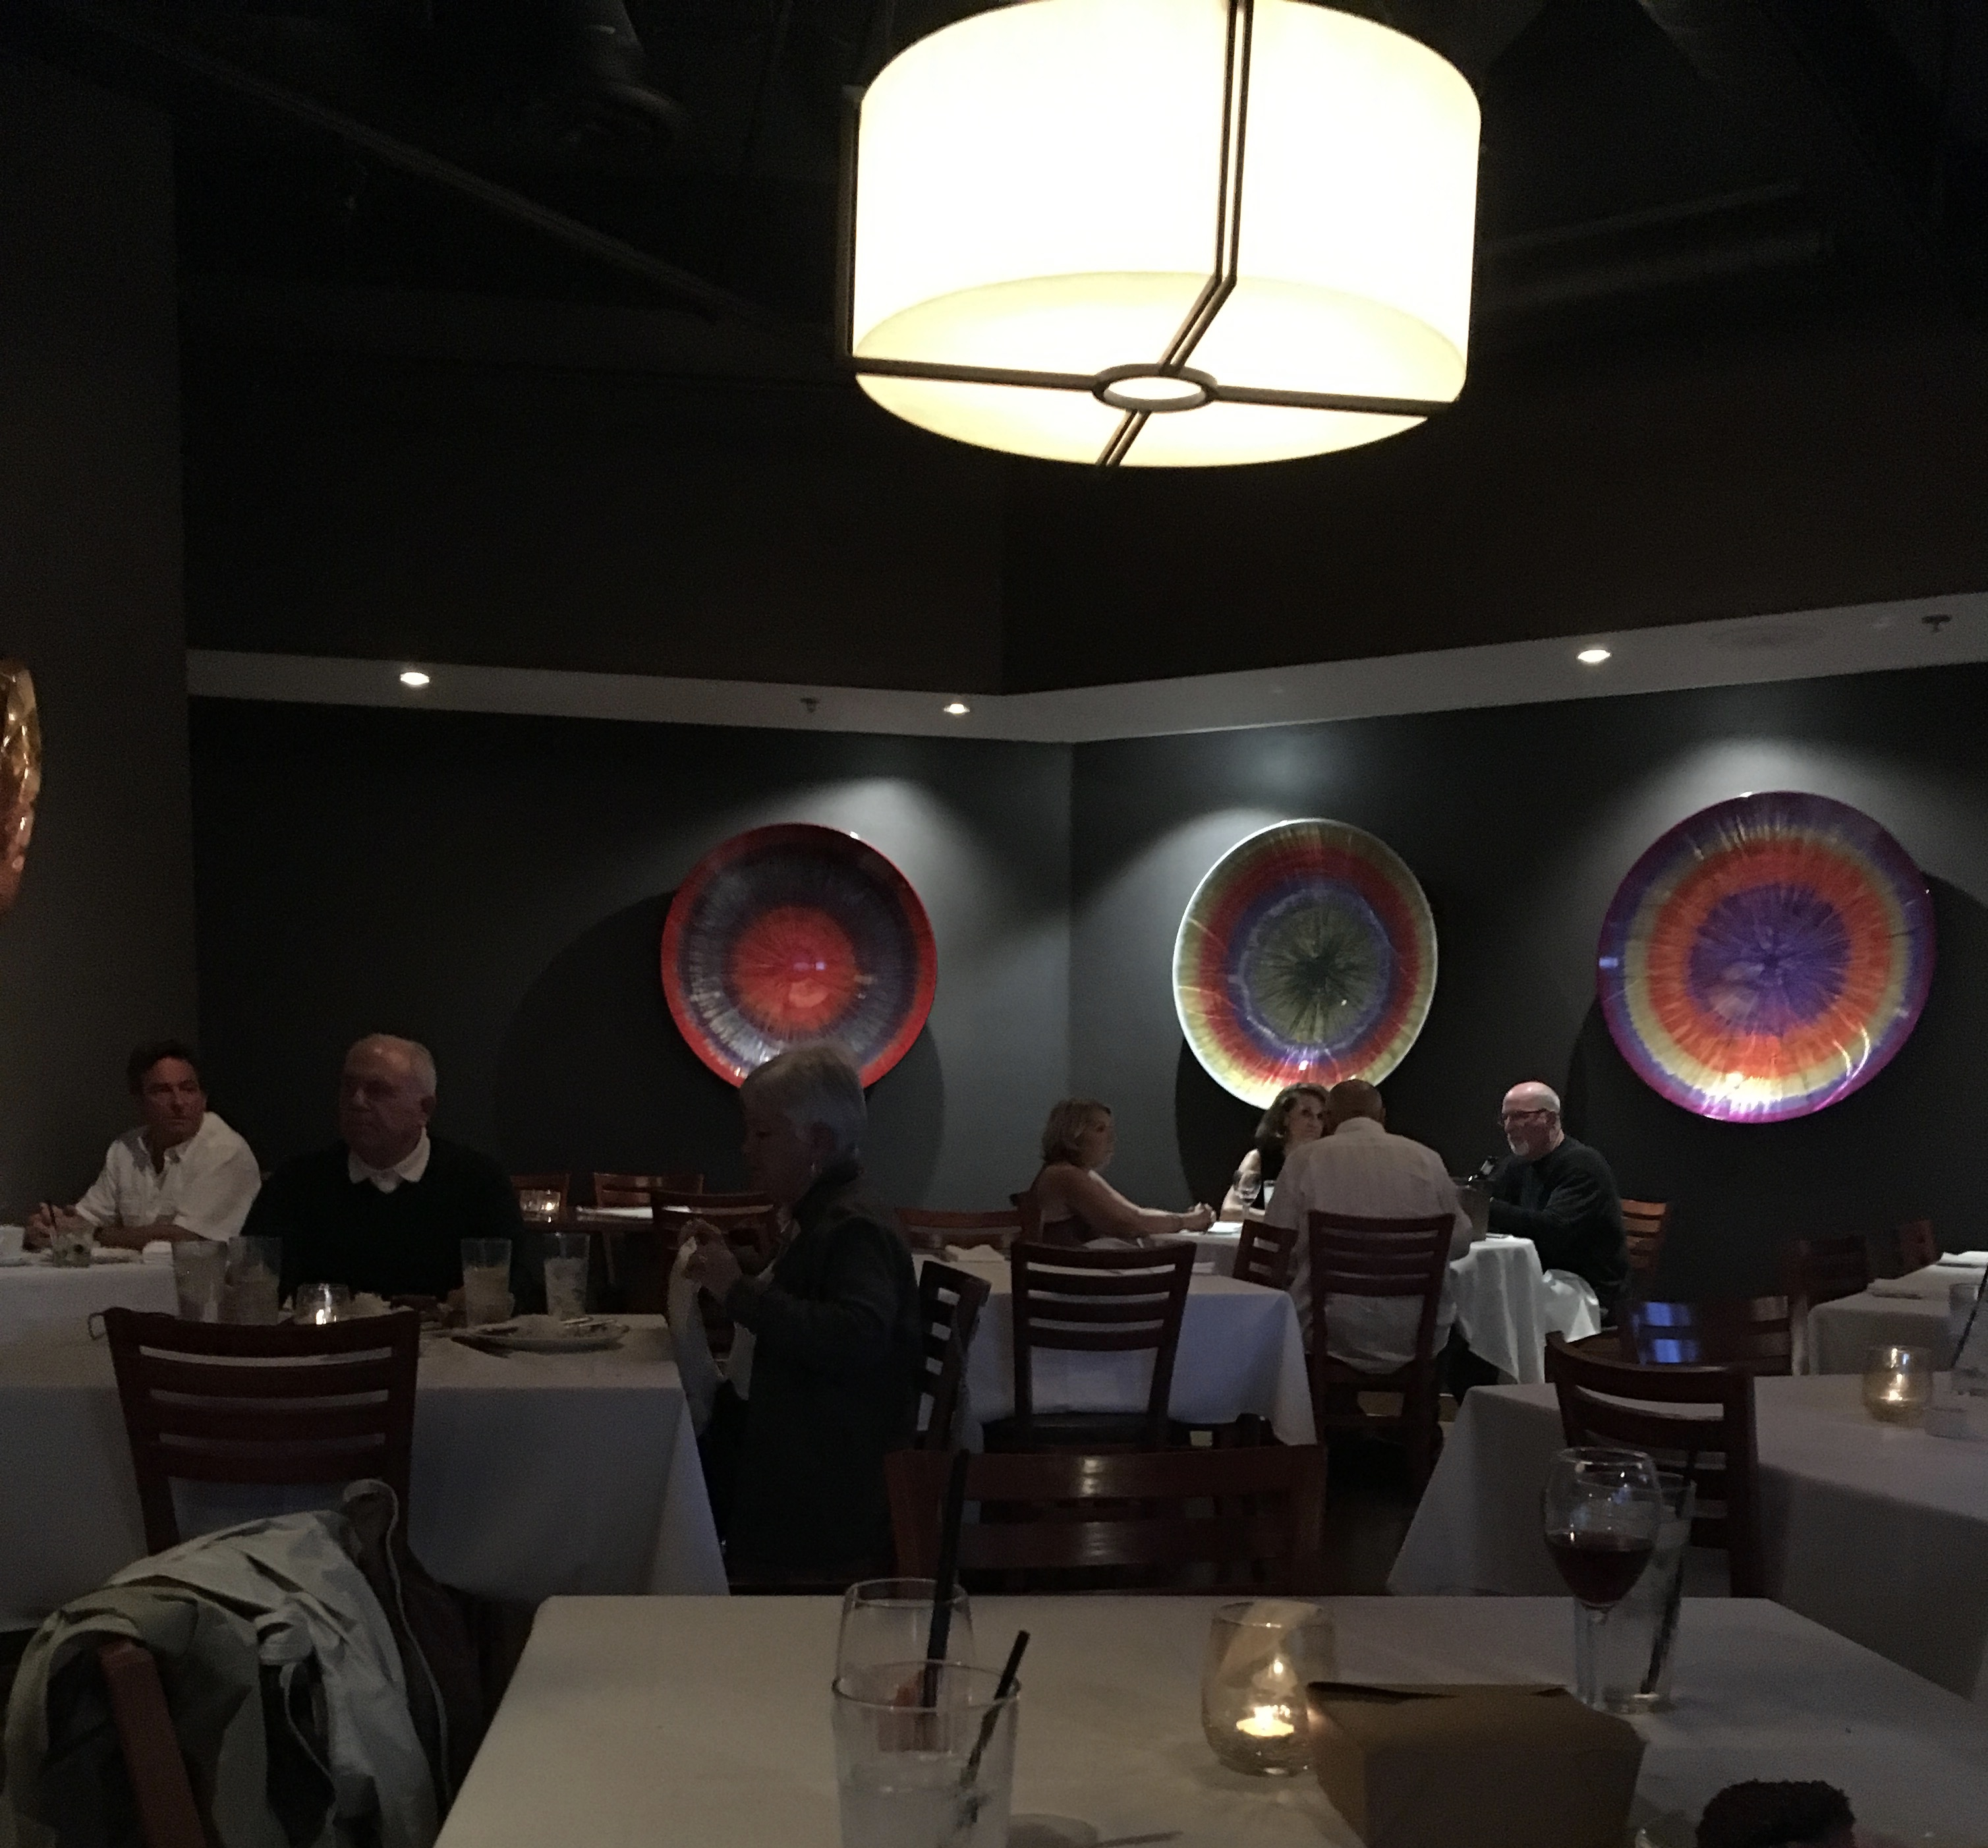 Carvalho S Brazilian Kitchen In Scottsdale Az Is Worth A Fork Now Closed For Business Theforkingtruth